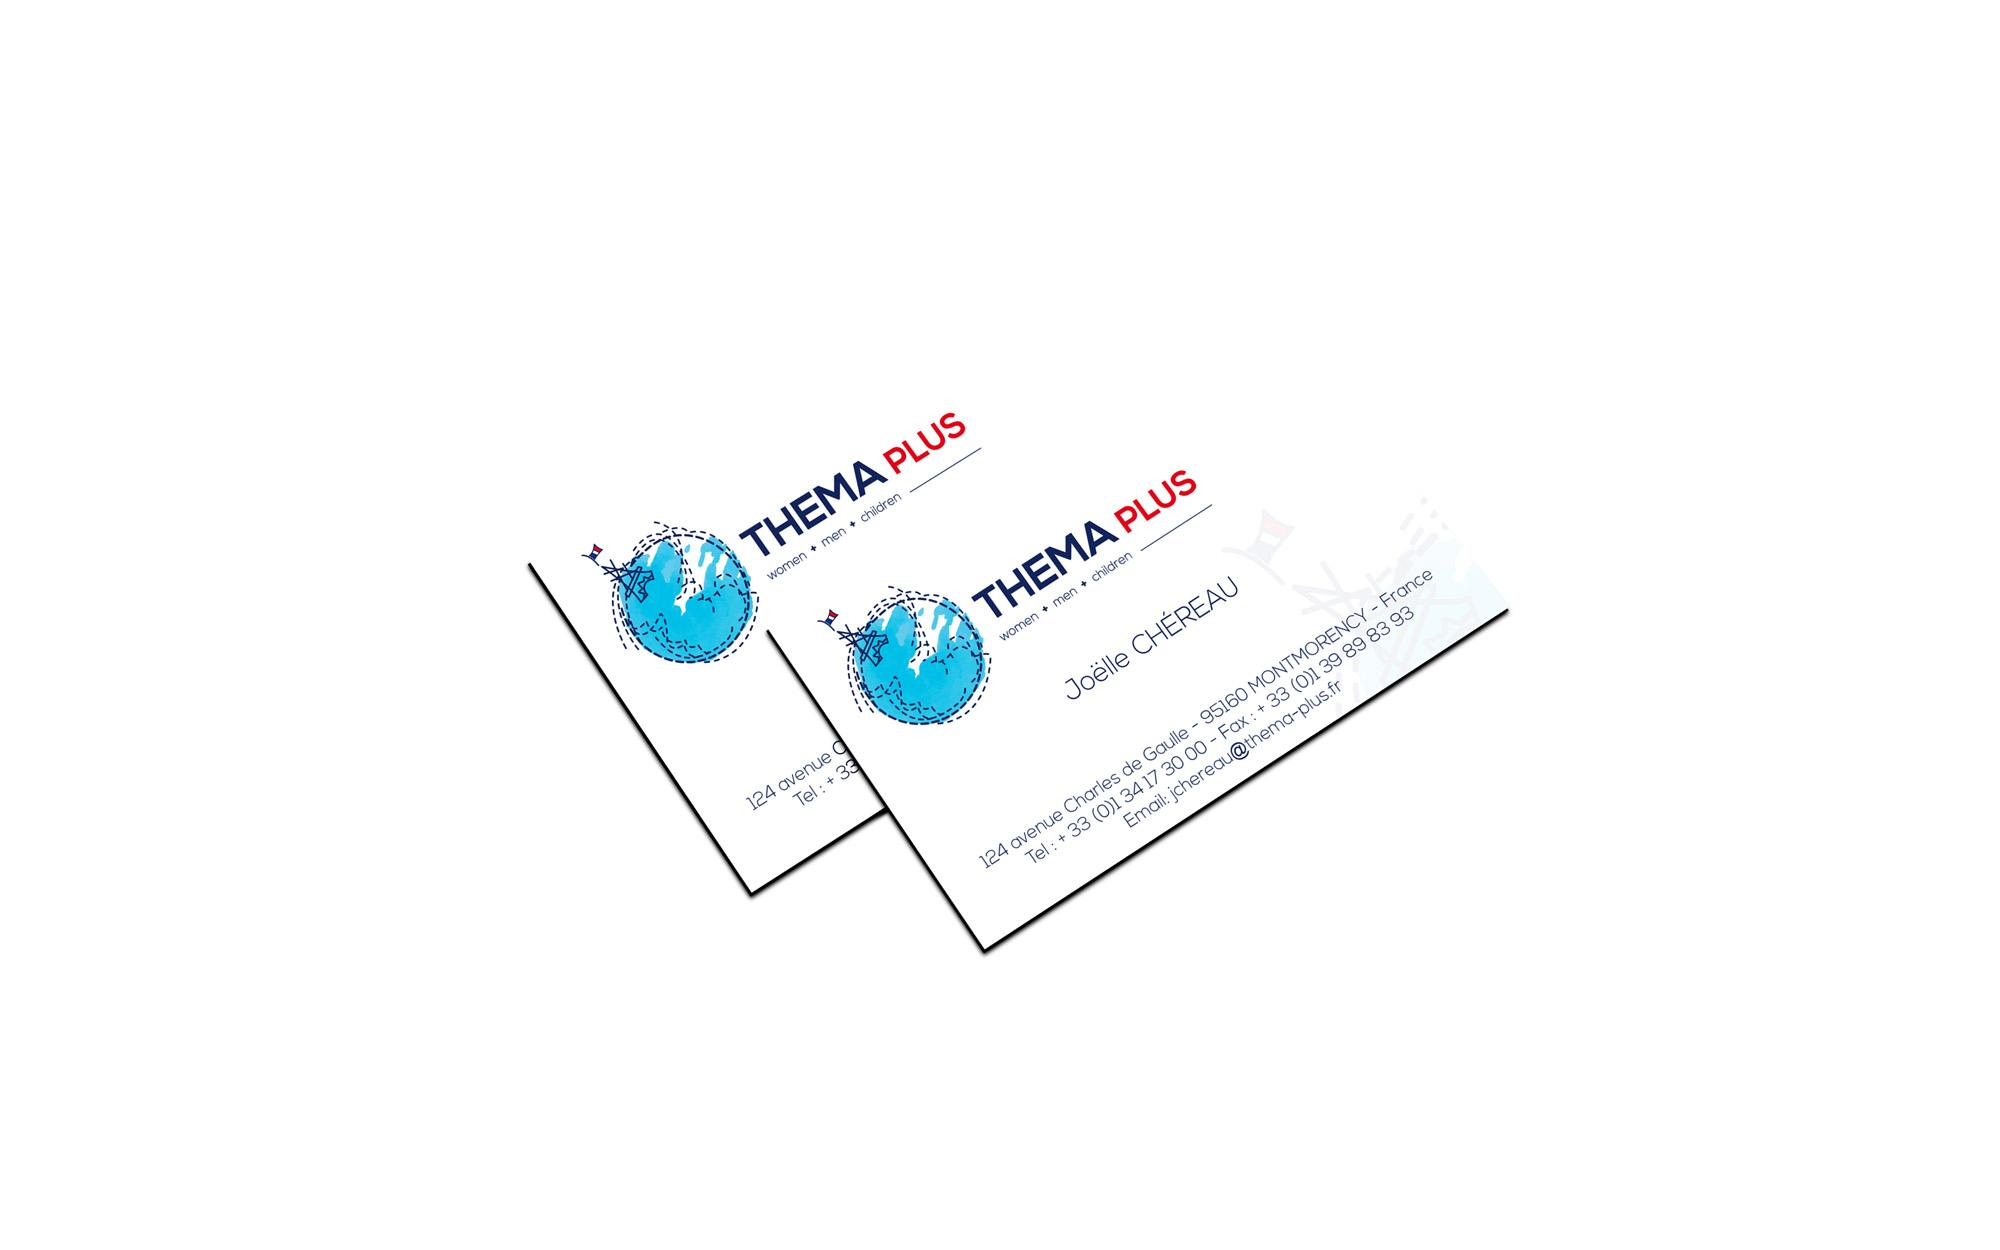 Kinkos fedex business cards choice image free business cards fed ex business cards choice image free business cards business cards pick up in store images magicingreecefo Gallery